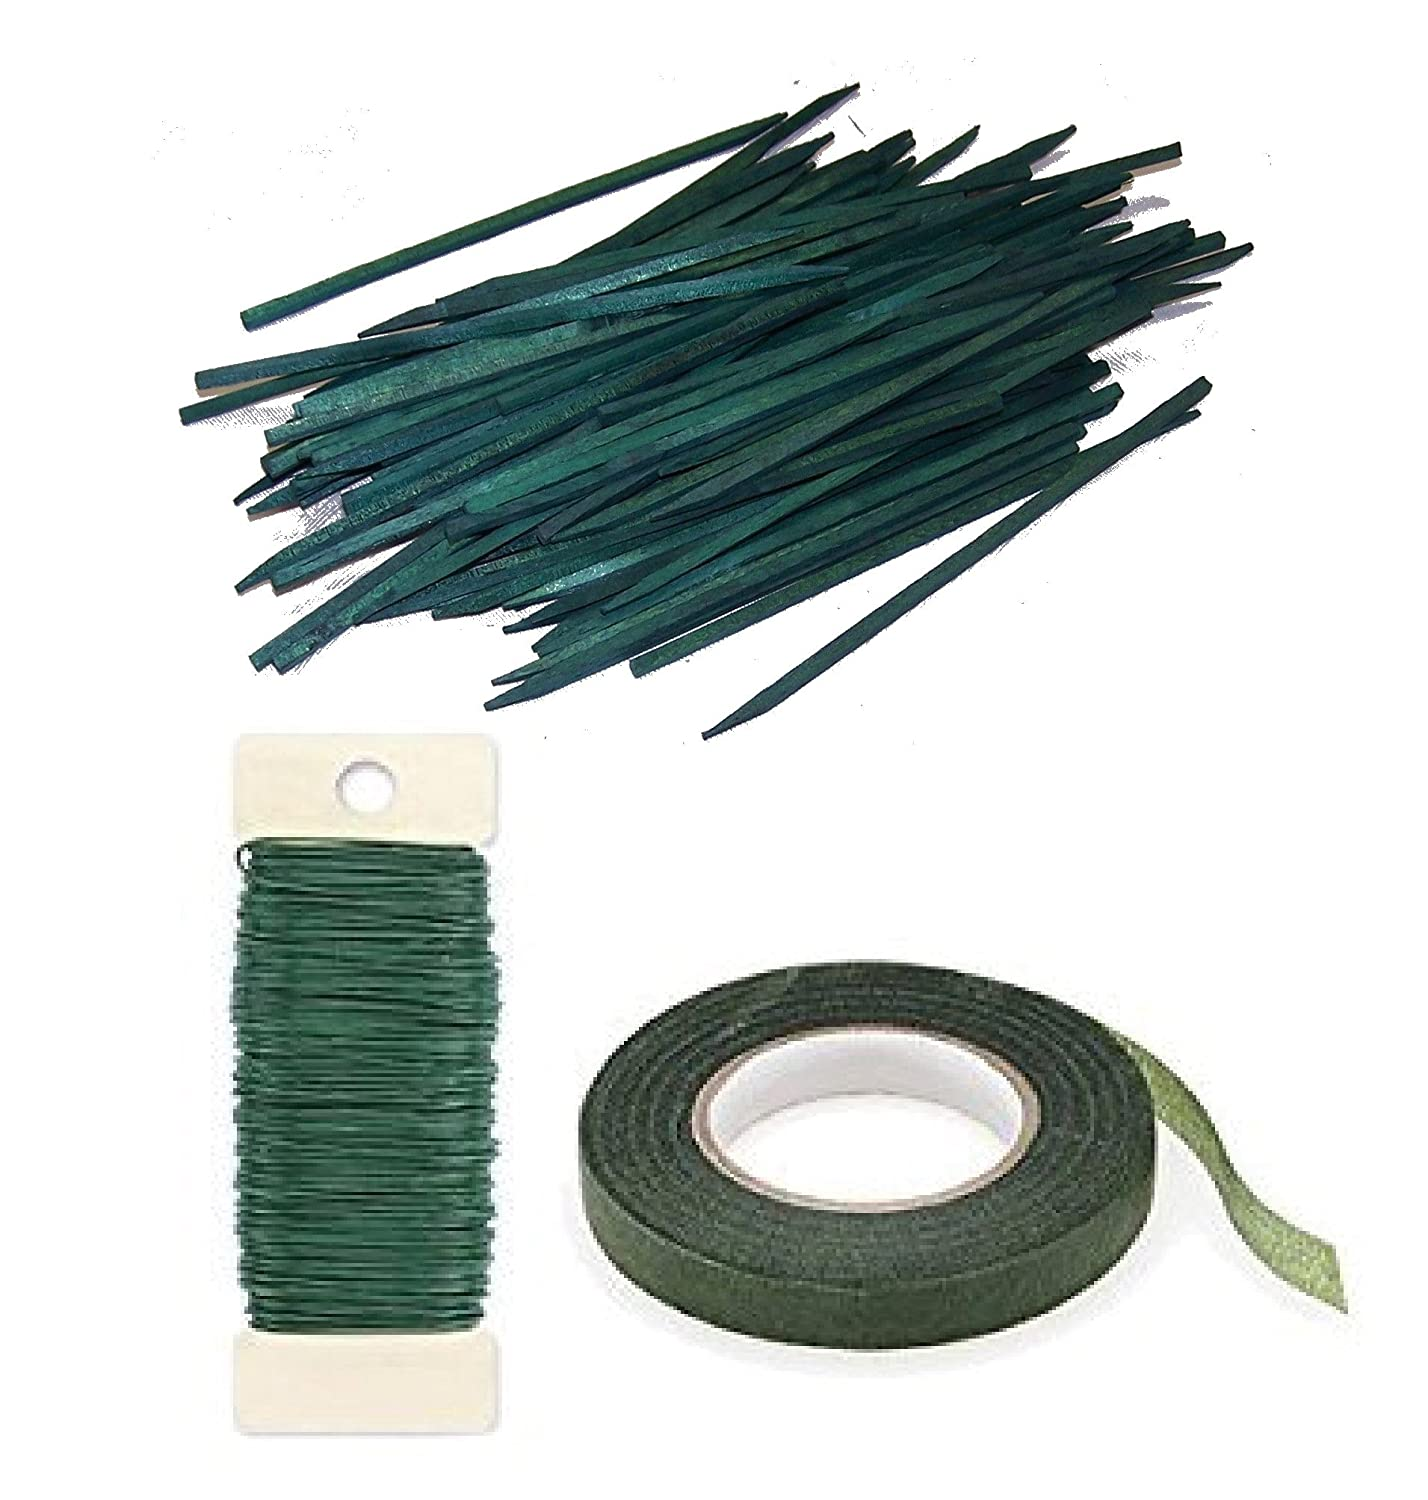 6 Inch Pick Bundle Wooden Wood Craft Picks Stakes 100 Count /& 22 Gauge Paddle Wire Green Floral Tape Bundle w// Flower Crafting eGuide